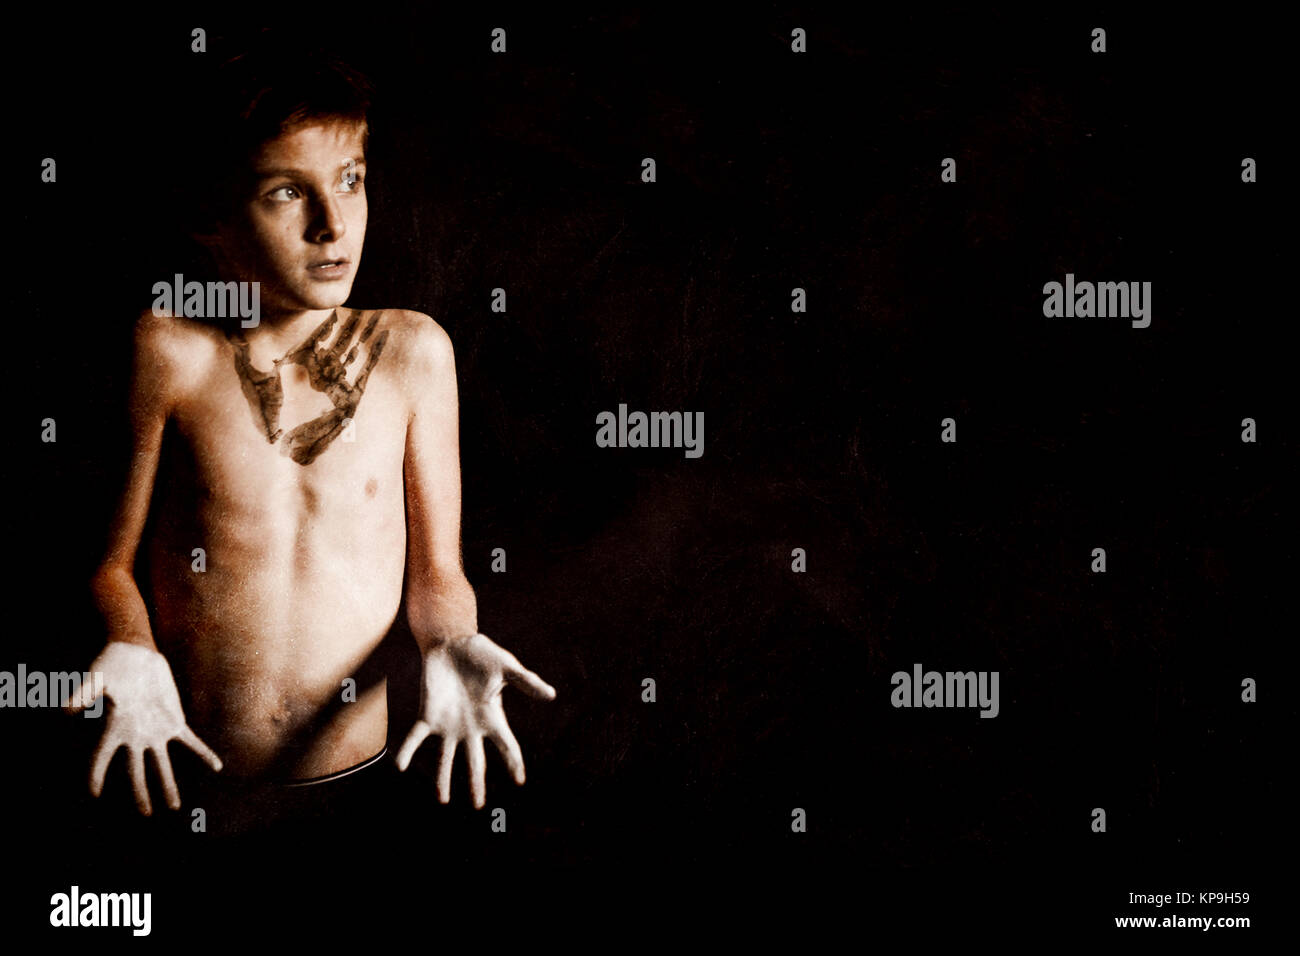 Clueless Shirtless Boy on Black with Copy Space - Stock Image